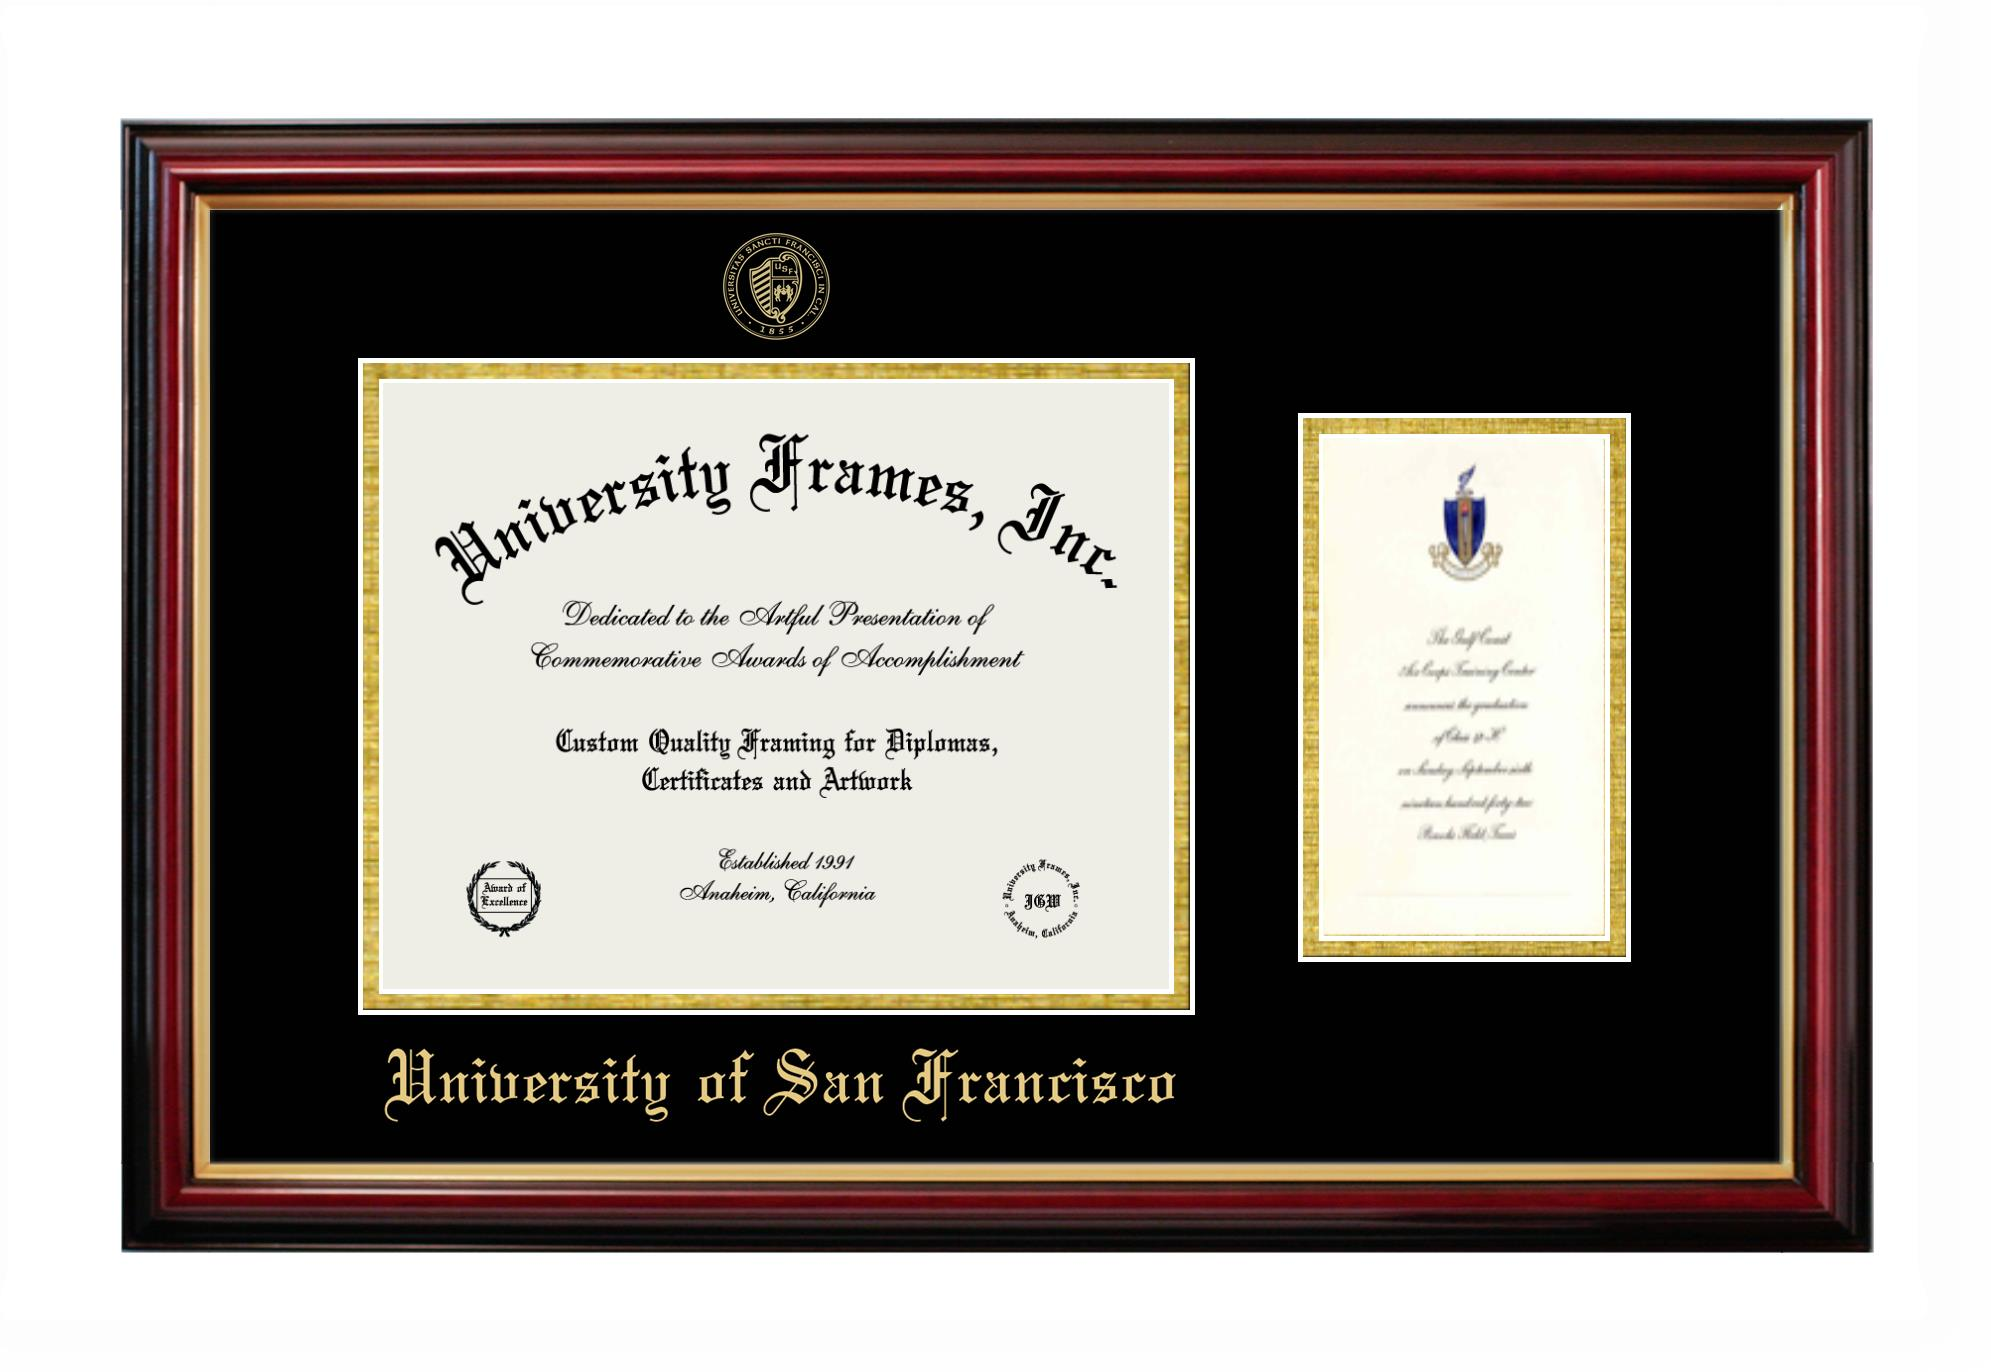 University Of San Francisco Diploma With Announcement Frame In Petite Mahogany With Gold Trim With Black Gold Mats